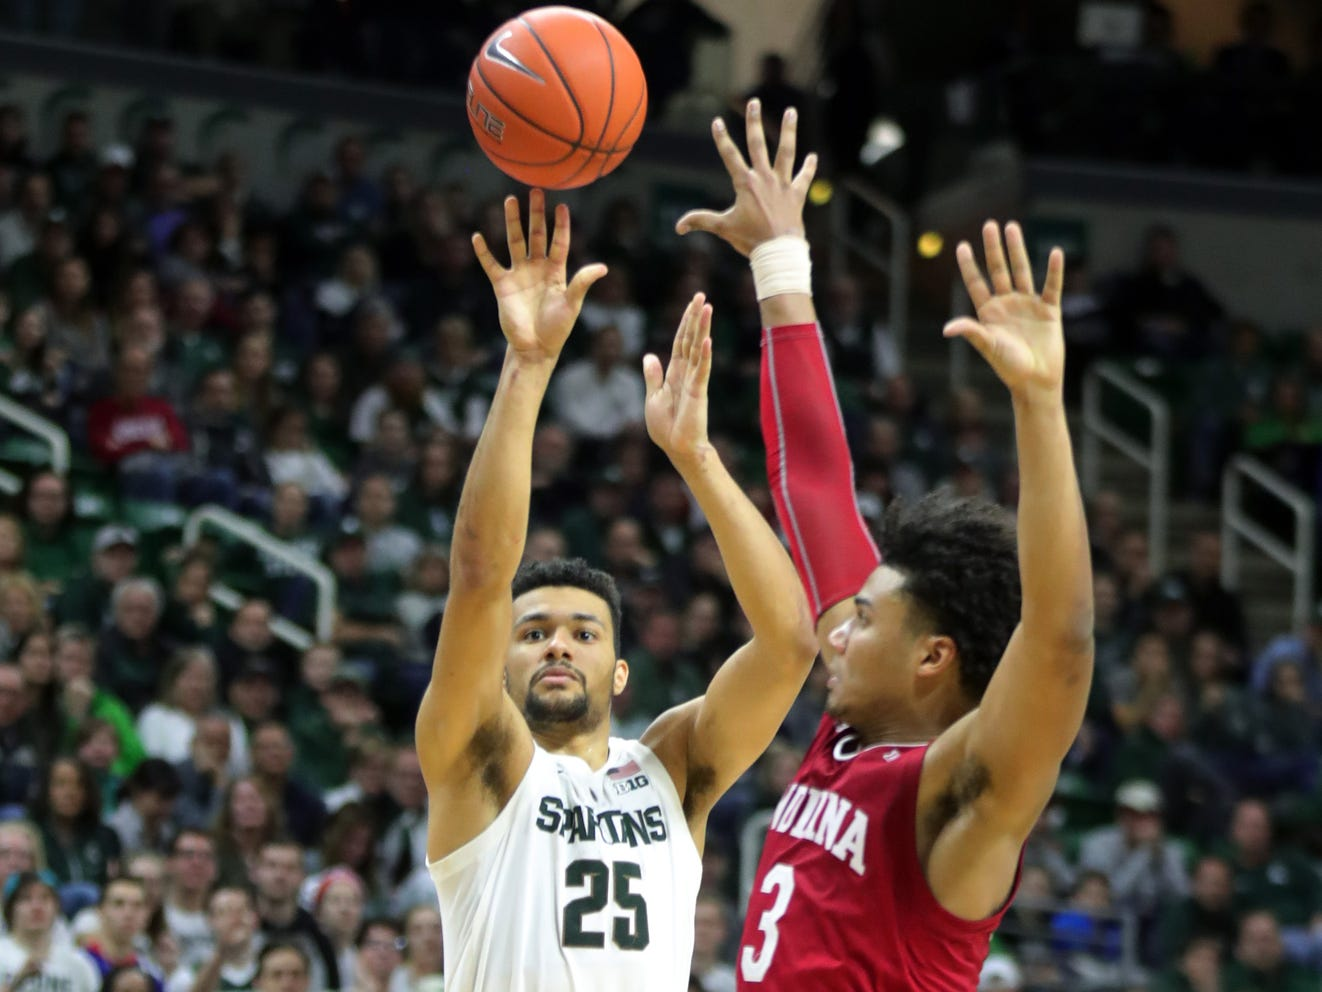 Michigan State forward Kenny Goins scores against Indiana forward Justin Smith during the second half of the 79-75 overtime loss to Indiana on Saturday, Feb. 2, 2019, in East Lansing.